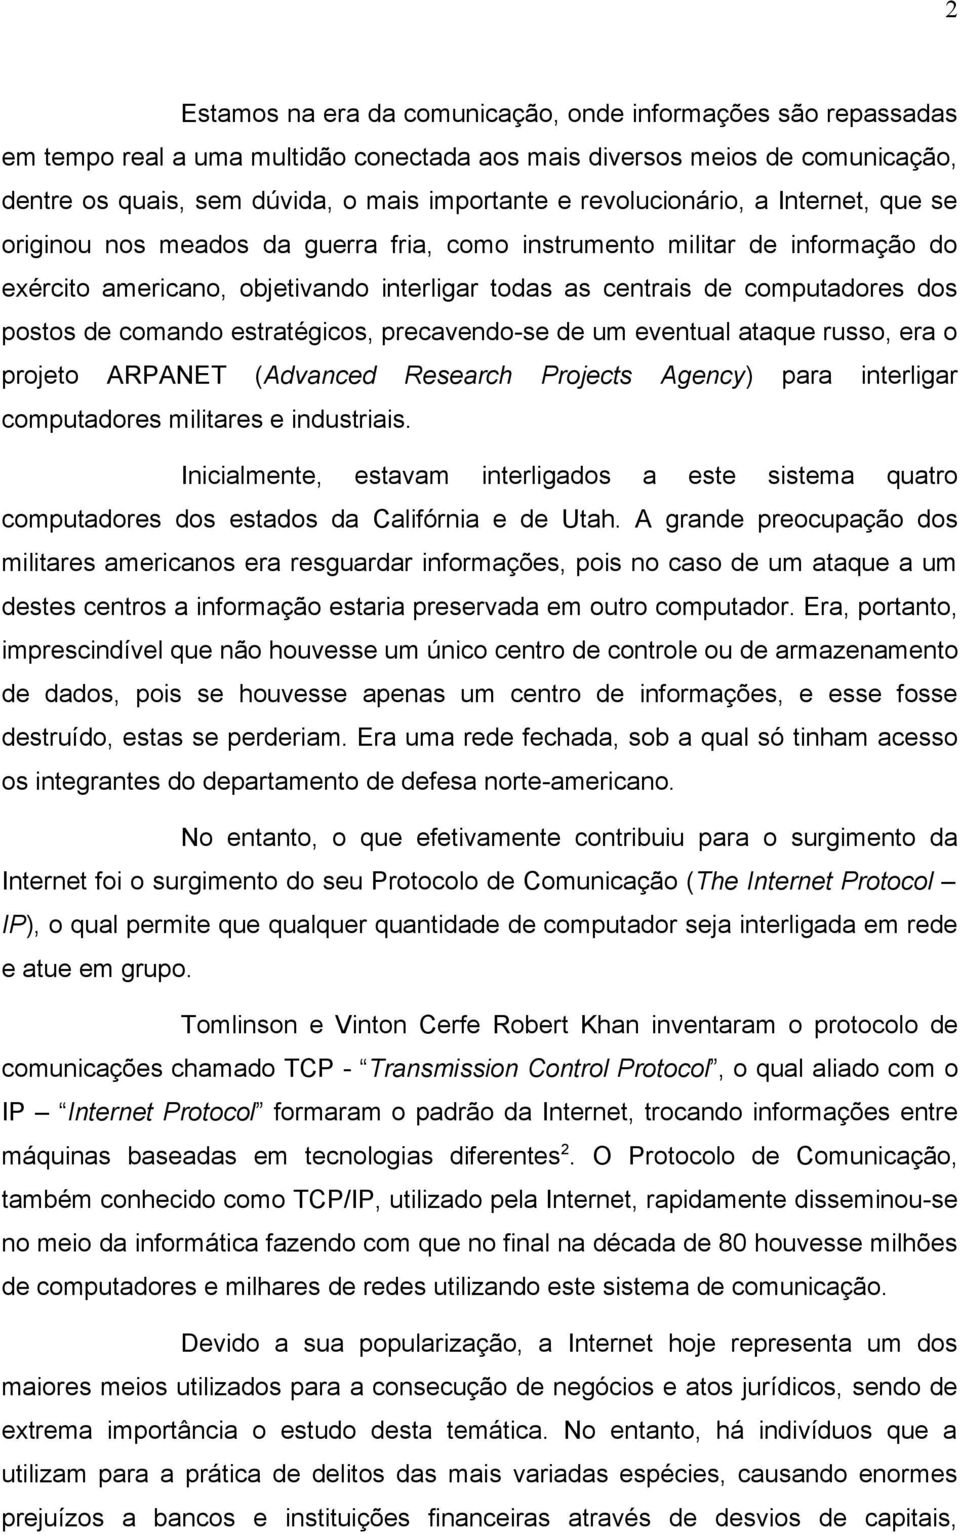 postos de comando estratégicos, precavendo-se de um eventual ataque russo, era o projeto ARPANET (Advanced Research Projects Agency) para interligar computadores militares e industriais.